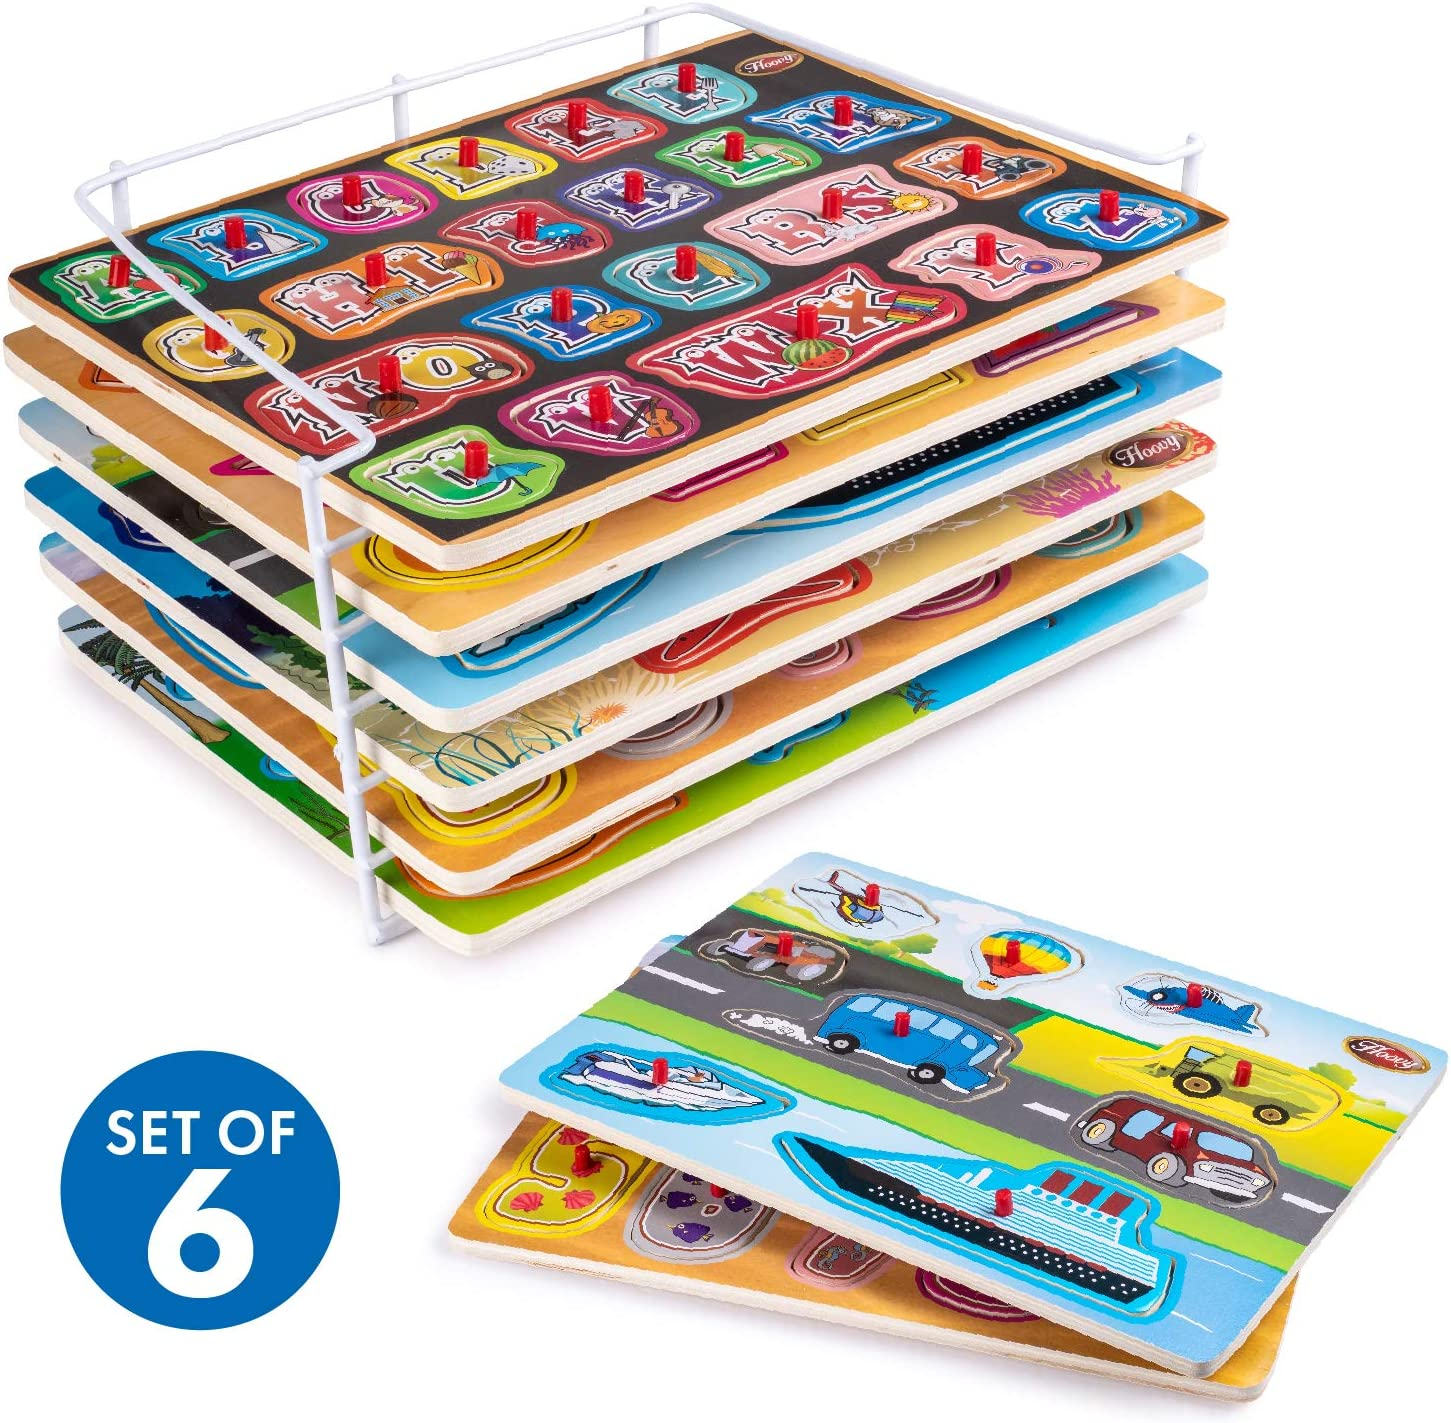 Premium Baby Peg Puzzle 6-in-1 Set by Hoovy - 6 Different Themed Educational Knob Puzzles for Boy & Girl Toddlers - Alphabet, Numbers, Sea Life, Dinosaurs, Shapes & Vehicles - Bonus: Storage